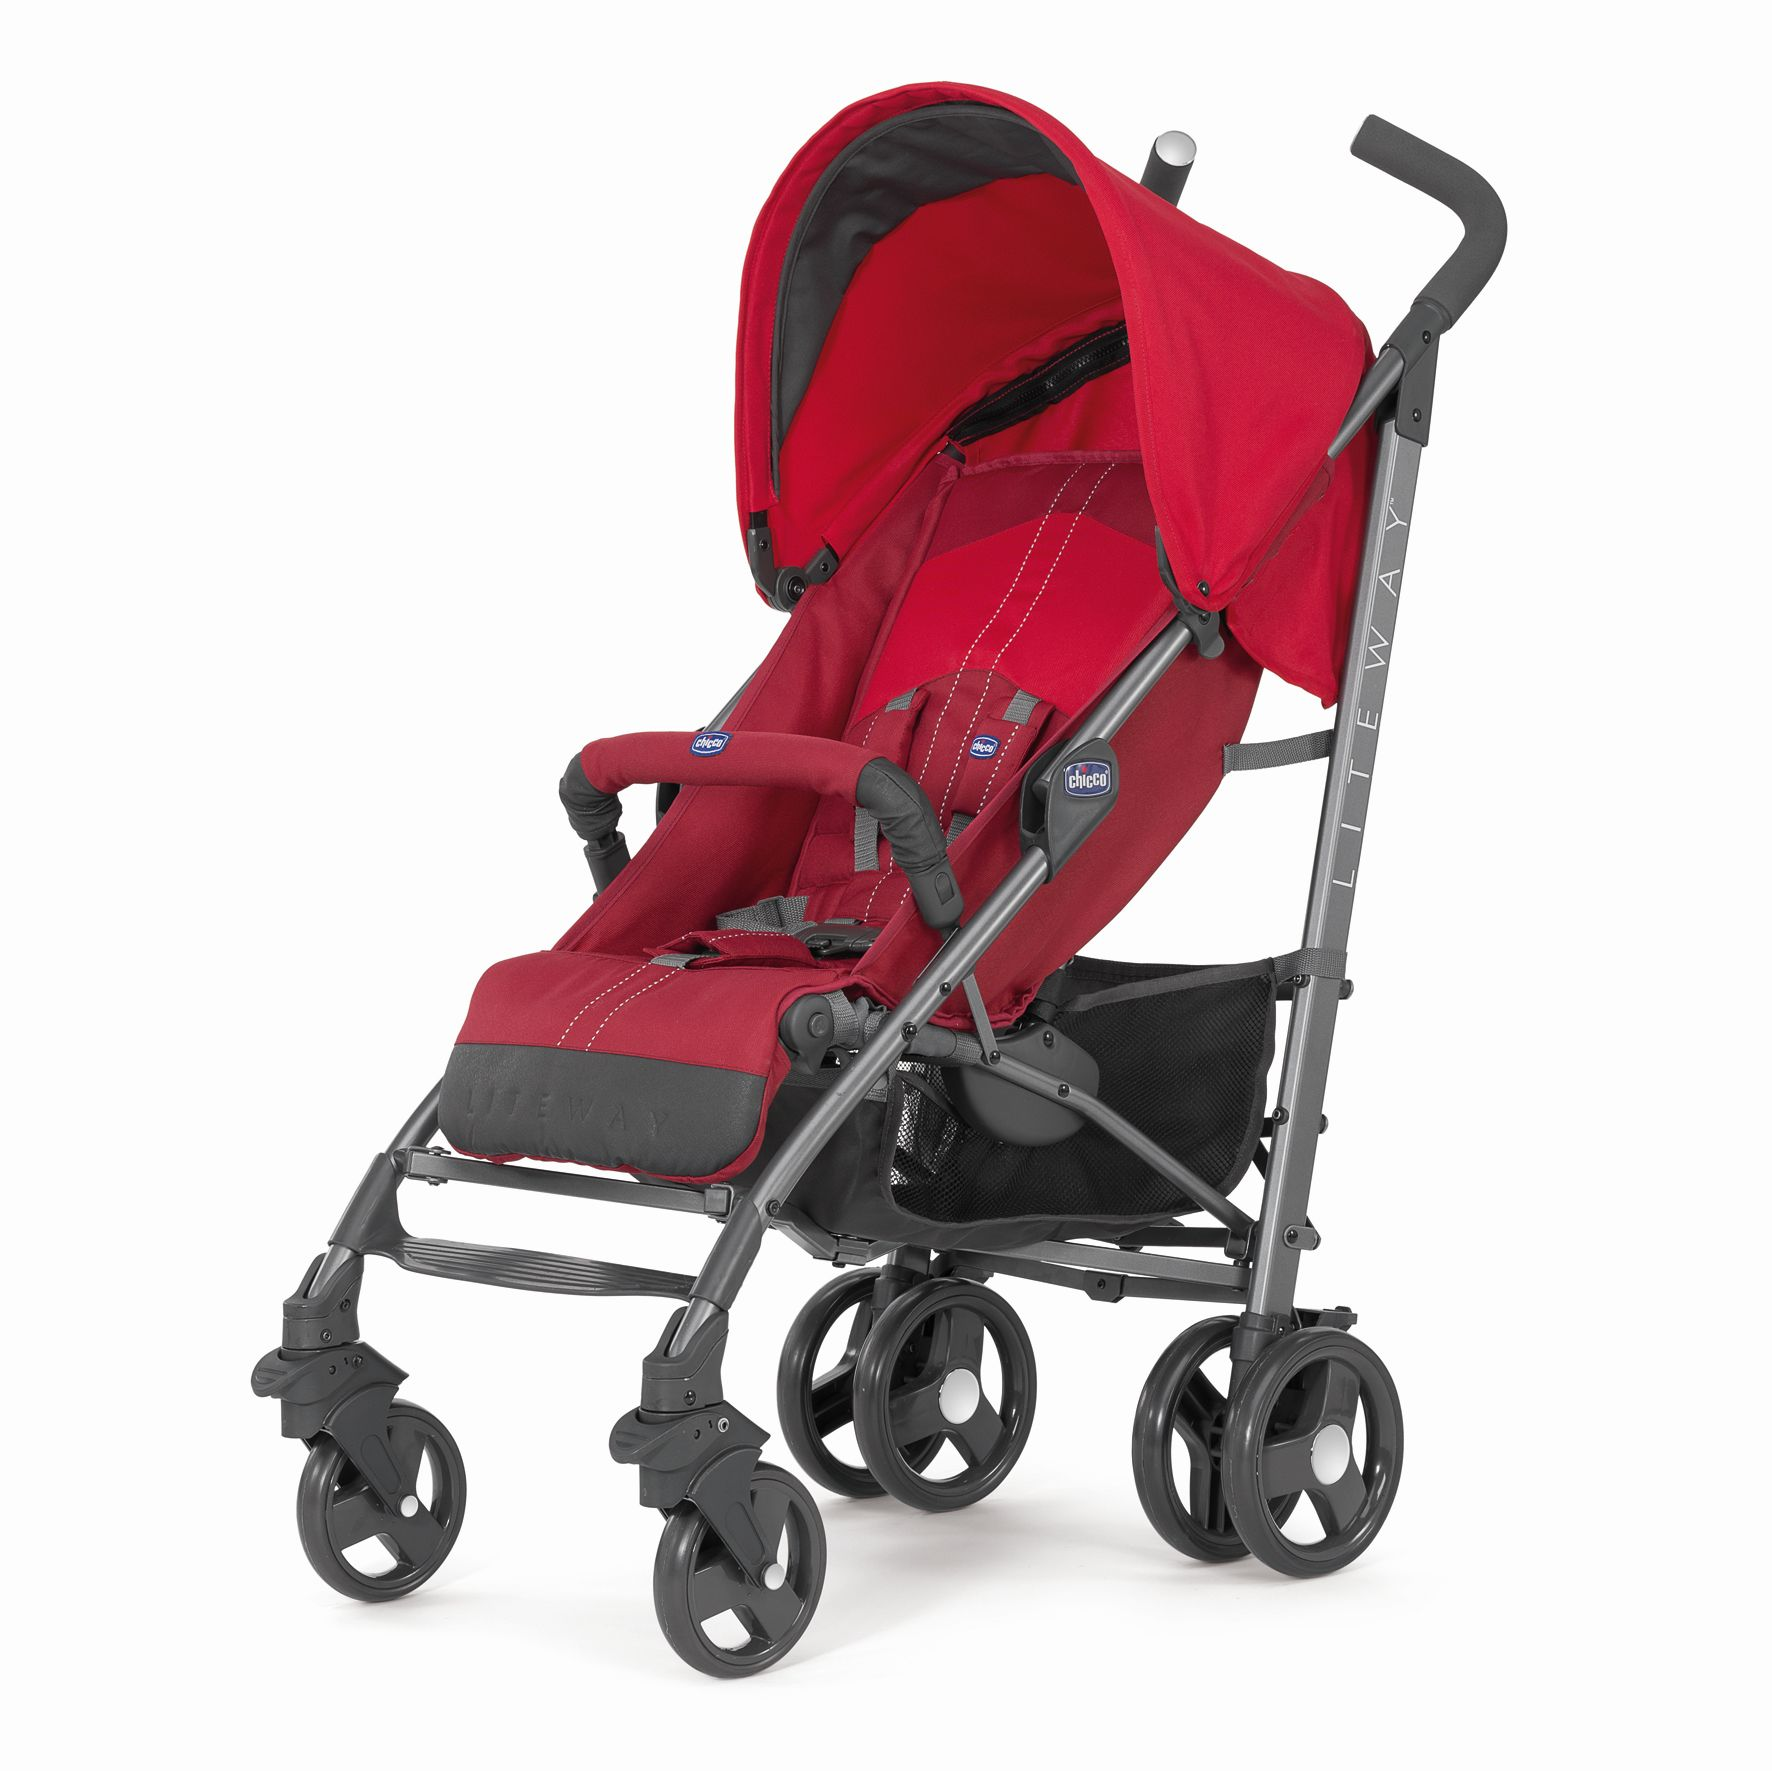 Chicco Pushchair Lite Way 3 Red 2017 large image 1